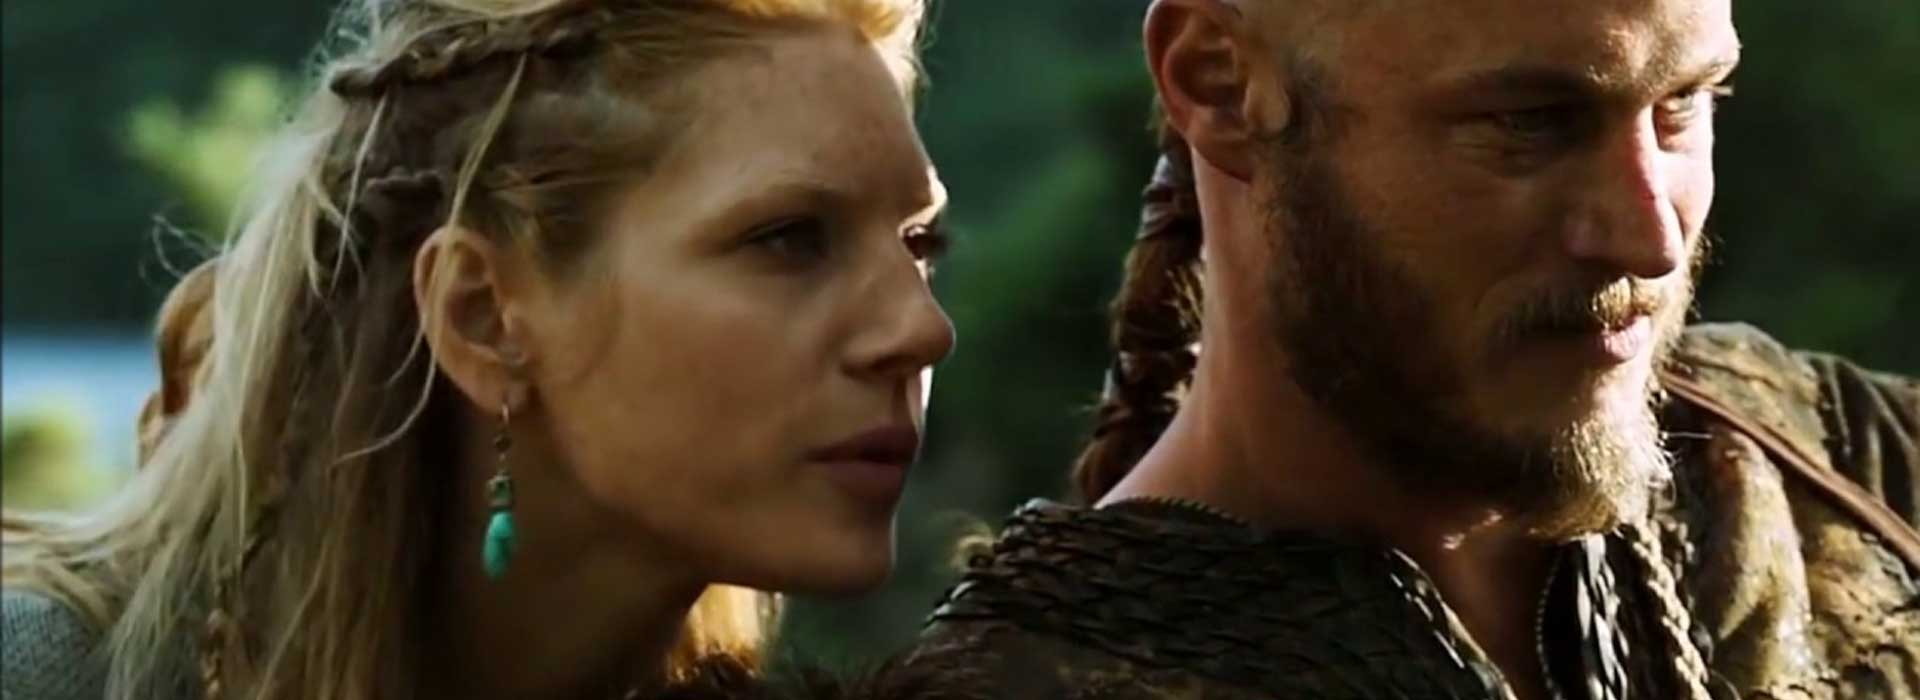 Lagertha et Ragnar couple